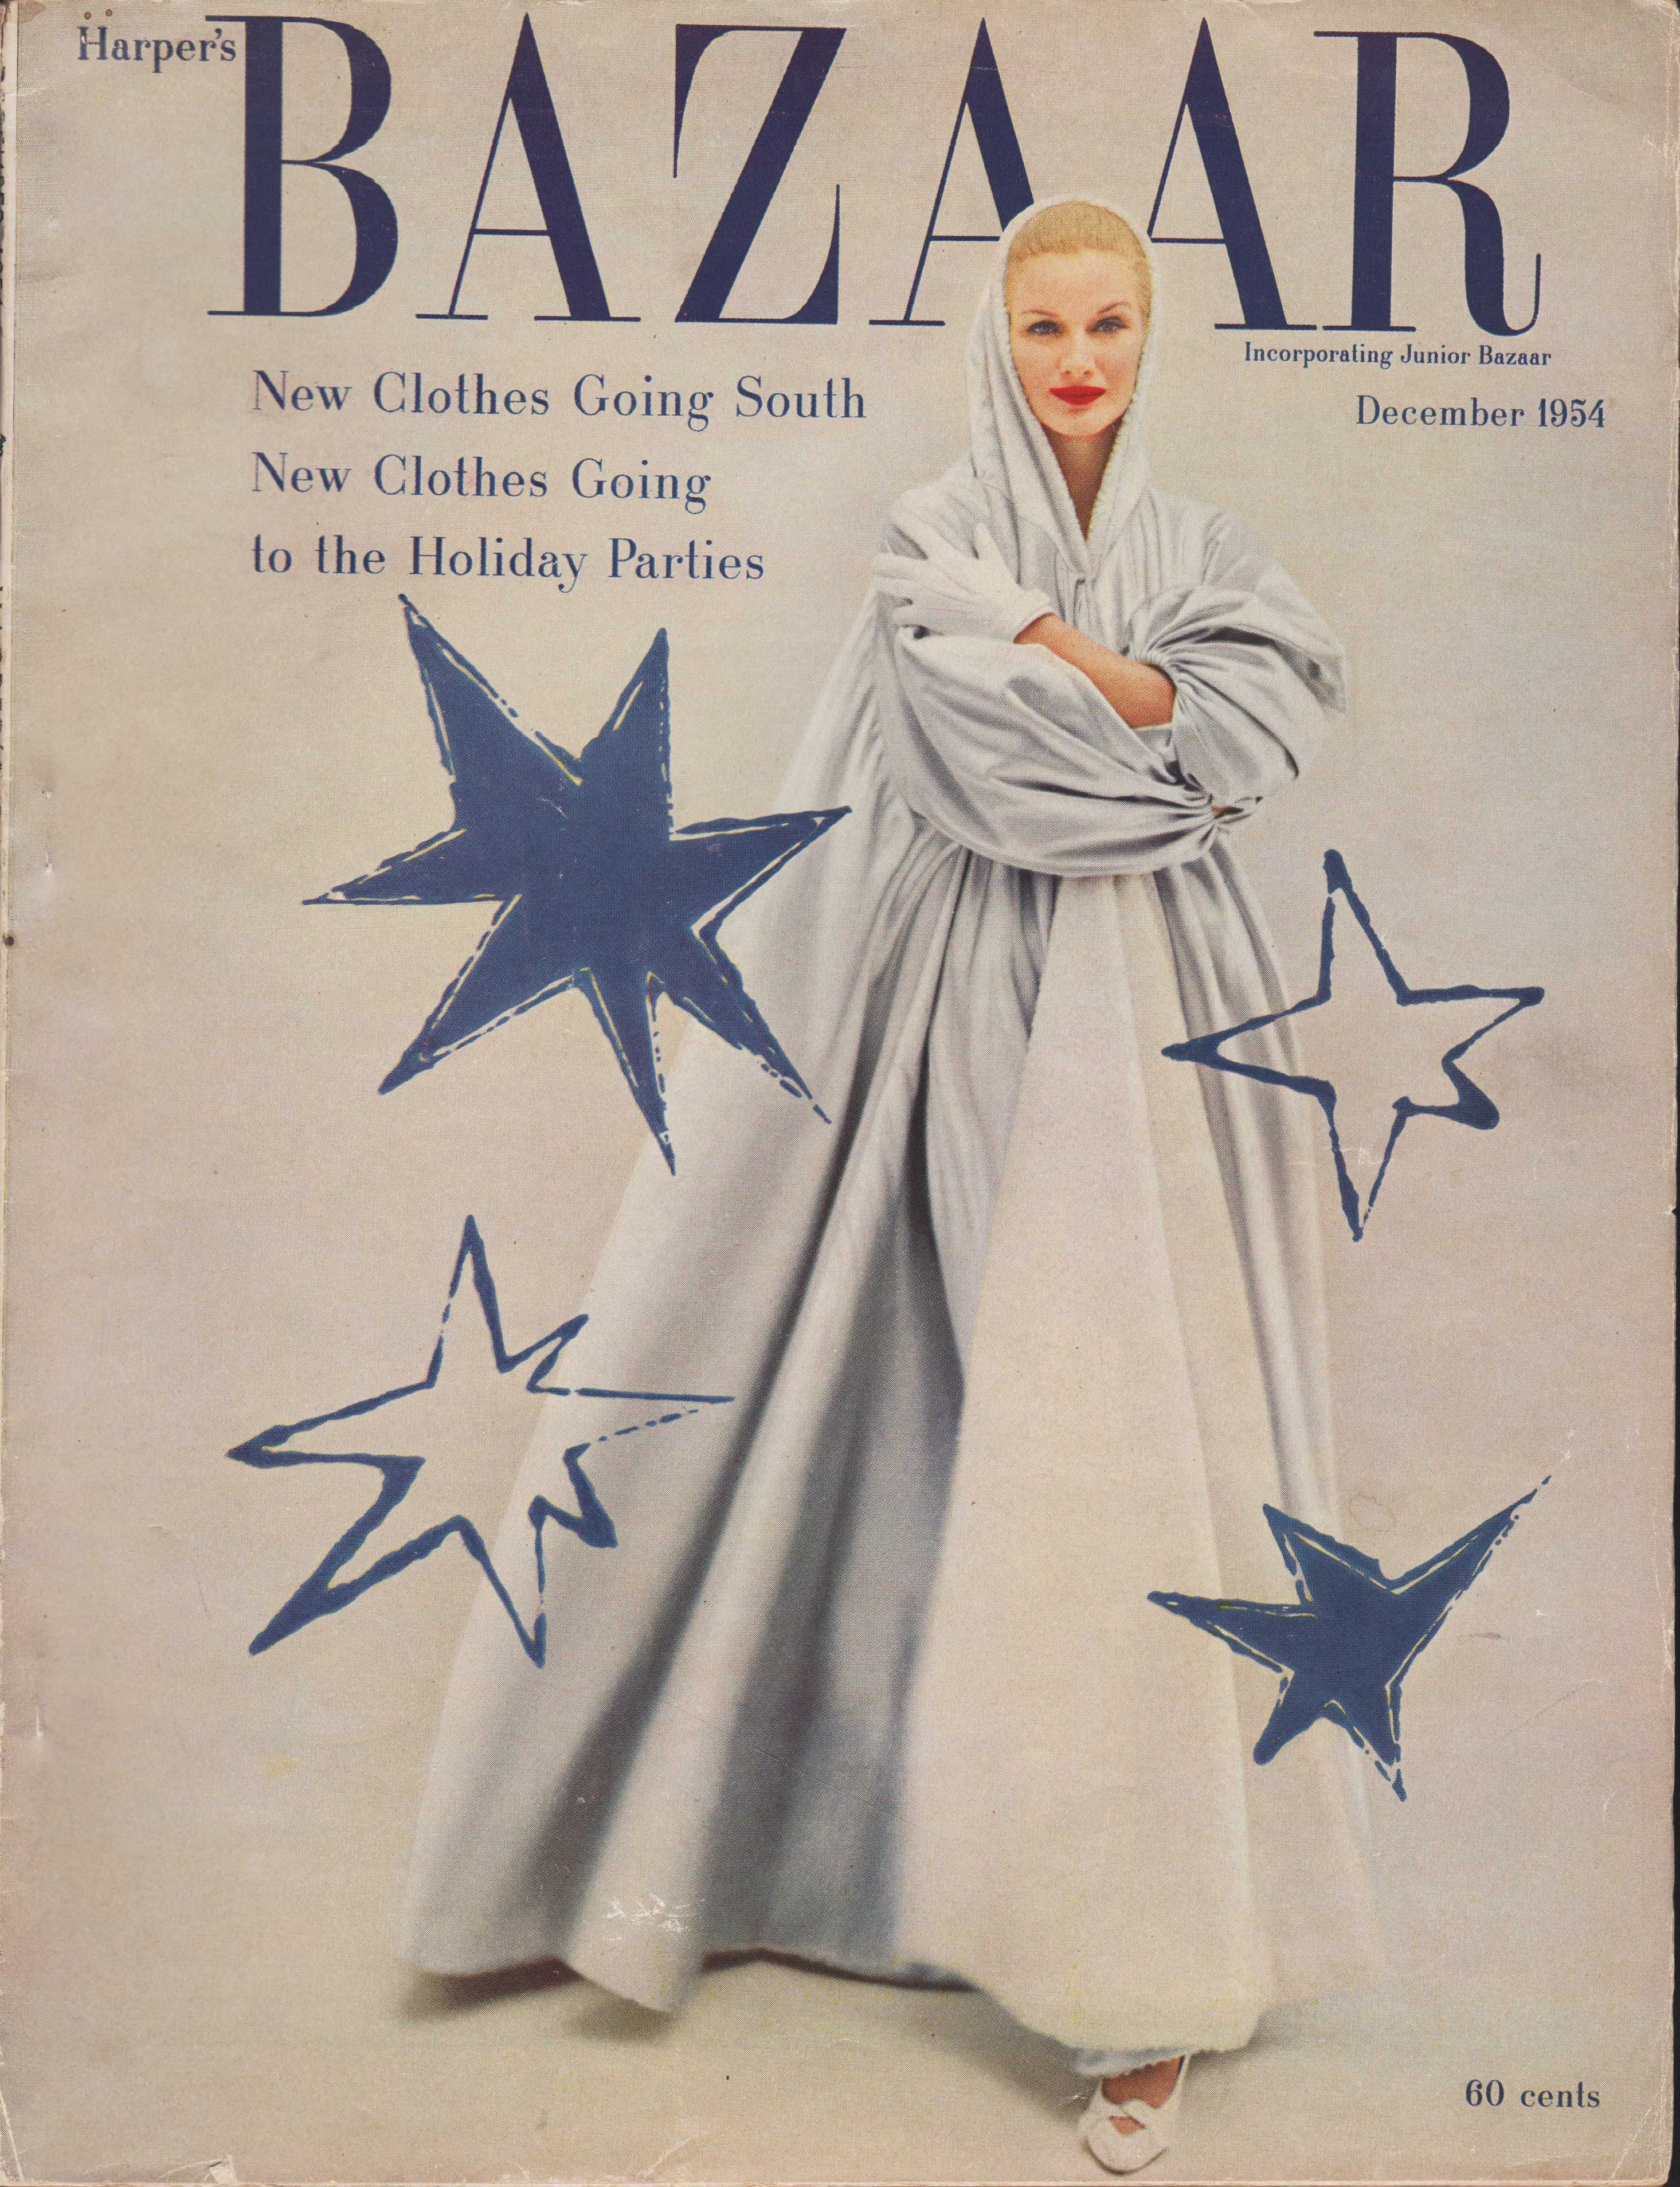 Harpers 1954